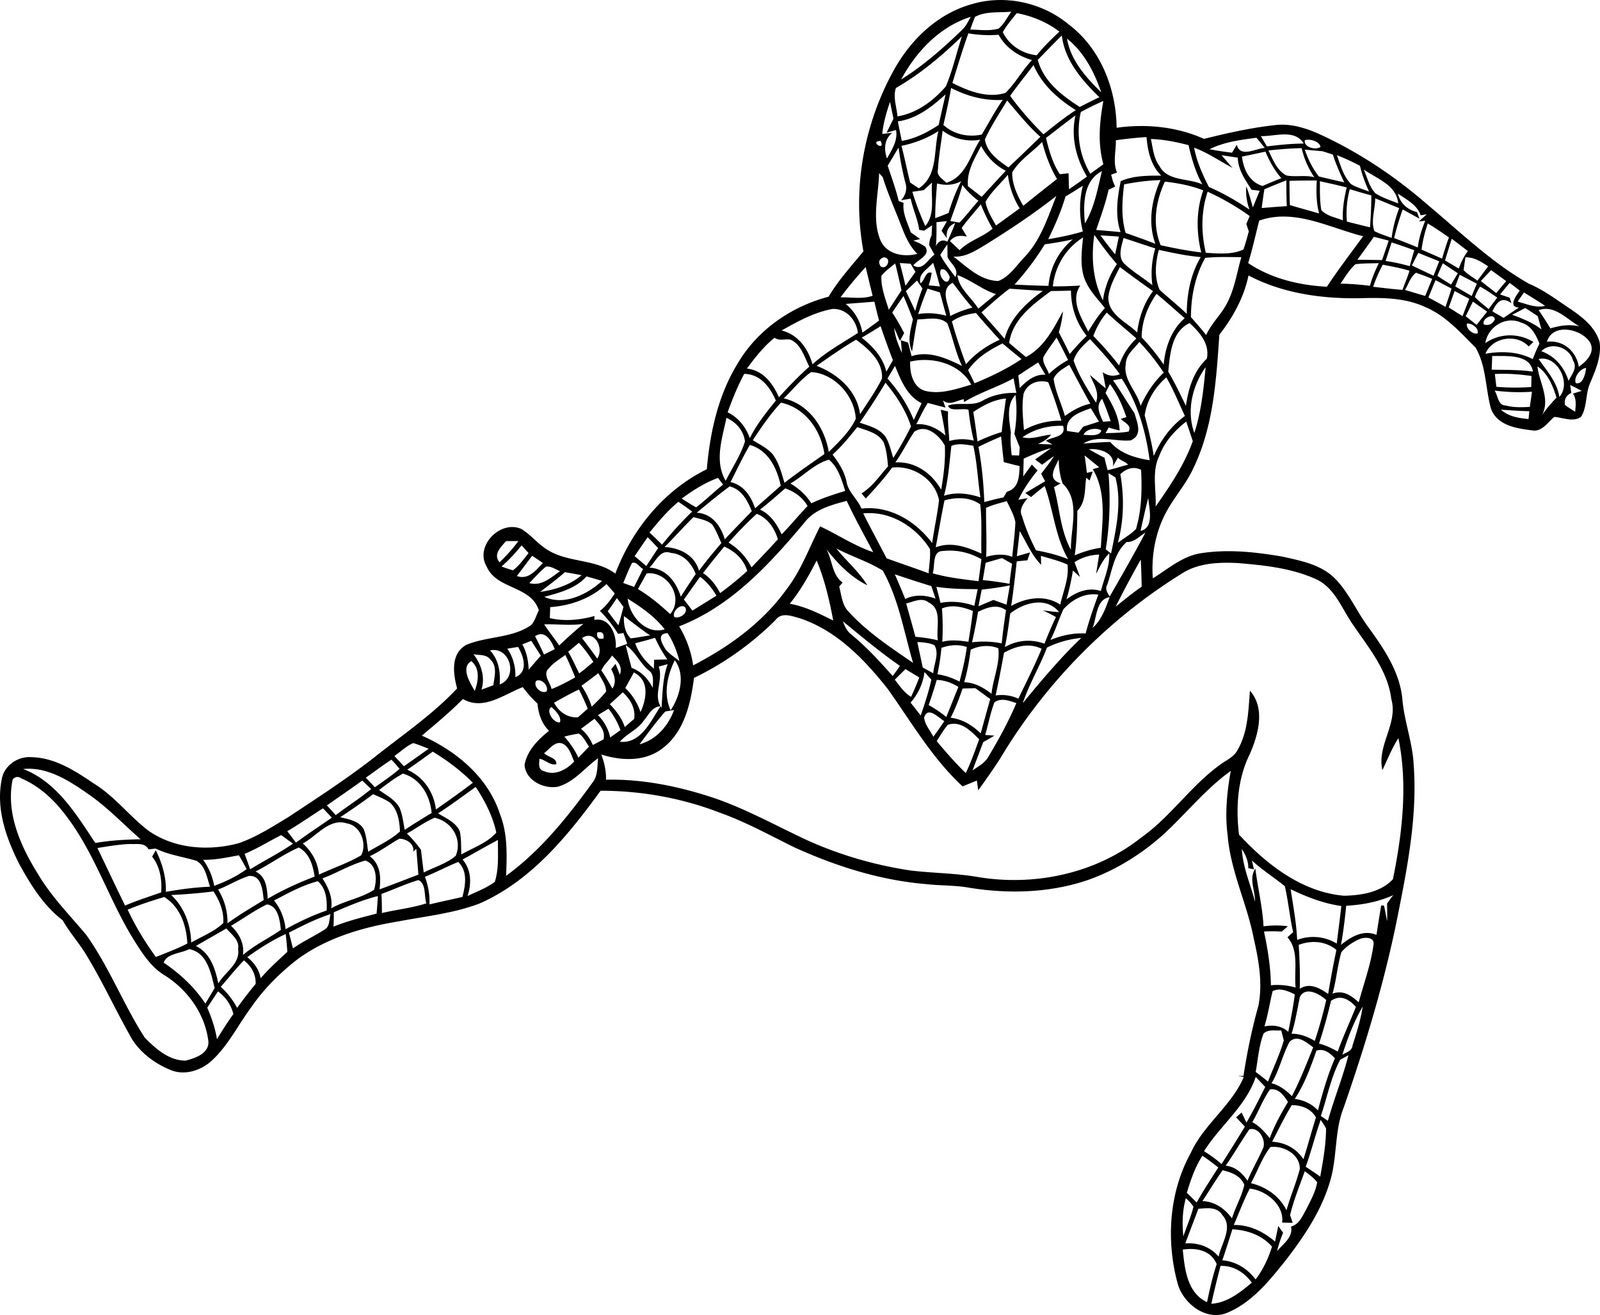 Free Printable Spiderman Coloring Pages Turtle Coloring Pages Lego Coloring Pages Spiderman Coloring